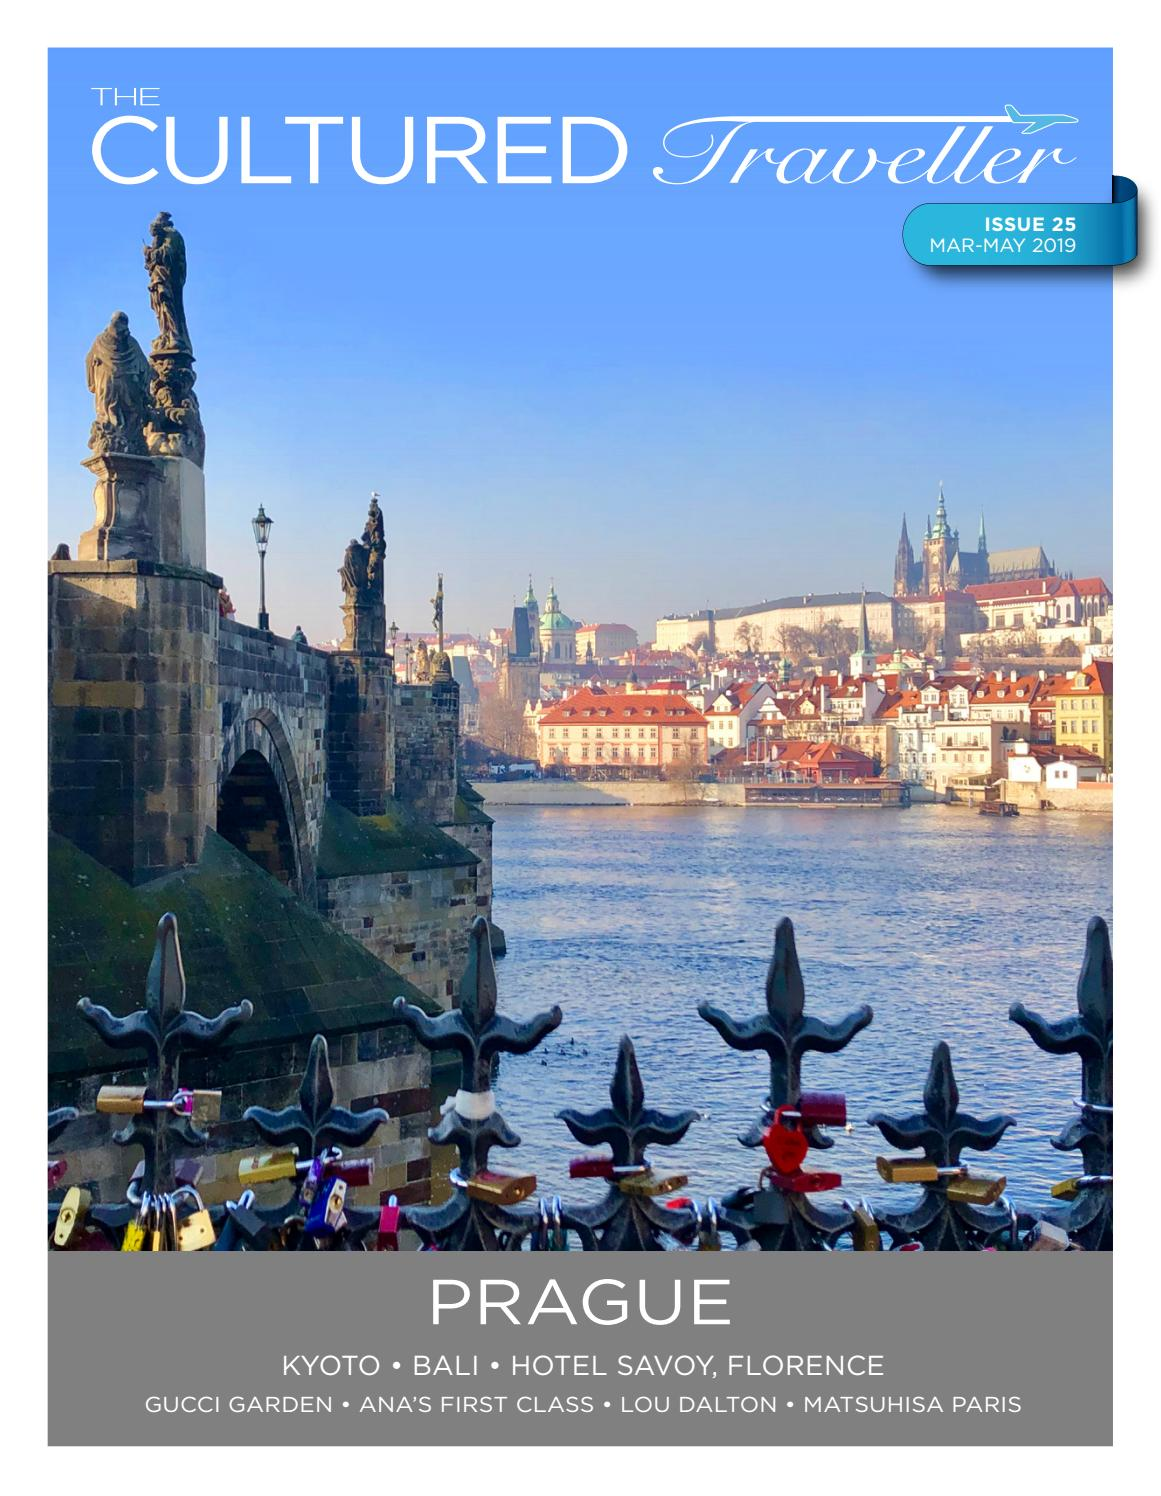 2c4552f6 The Cultured Traveller, March-May 2019 Issue 25 by The Cultured Traveller -  issuu